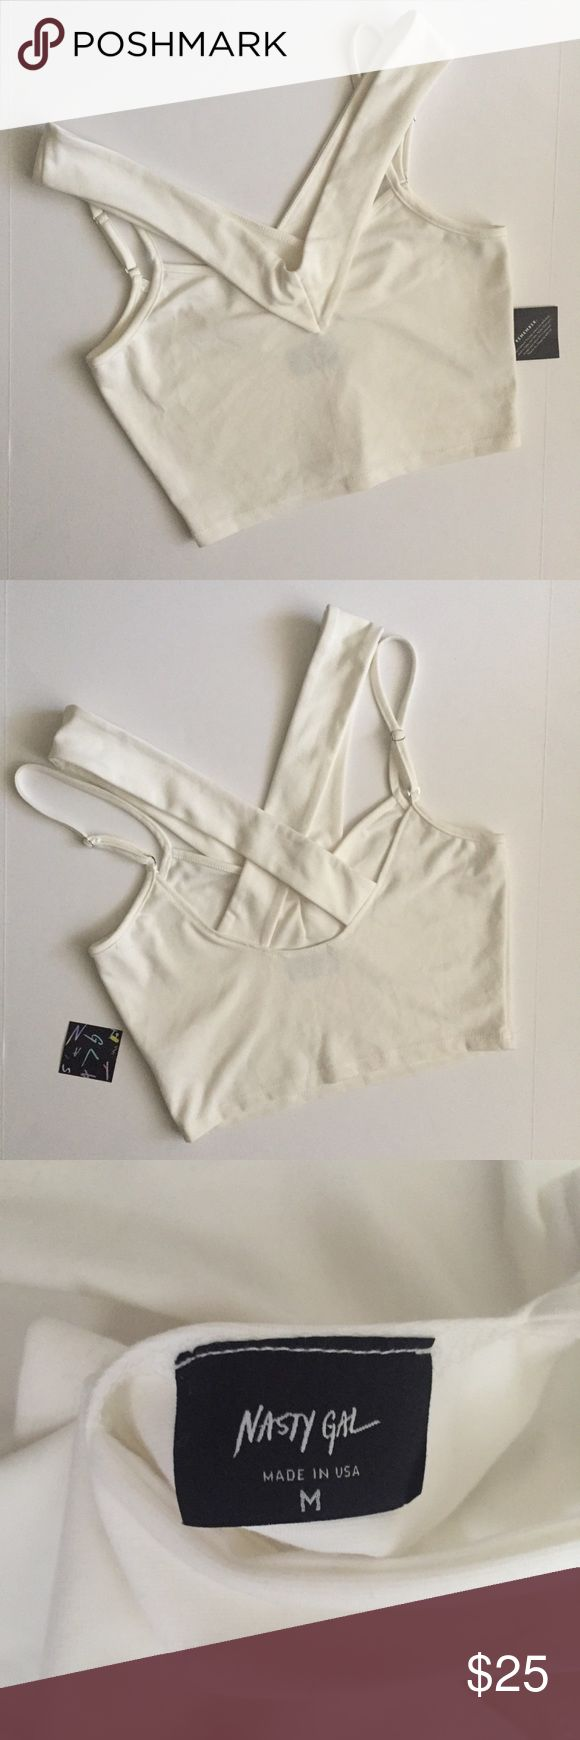 """White/cream strappy crop top by Nasty Gal size M Soft crop top with cross cross straps around back and adjustable spaghetti straps in a white/cream color.  Stretchy material!  Size M By Nasty Gal  Brand new, one original tag still attached.   Measurements are approximate (flat lay): Armpit to armpit- 16.5"""" Length (shoulder to hem)- 17""""  Color may vary in person from pictures and between screens Nasty Gal Tops Crop Tops"""